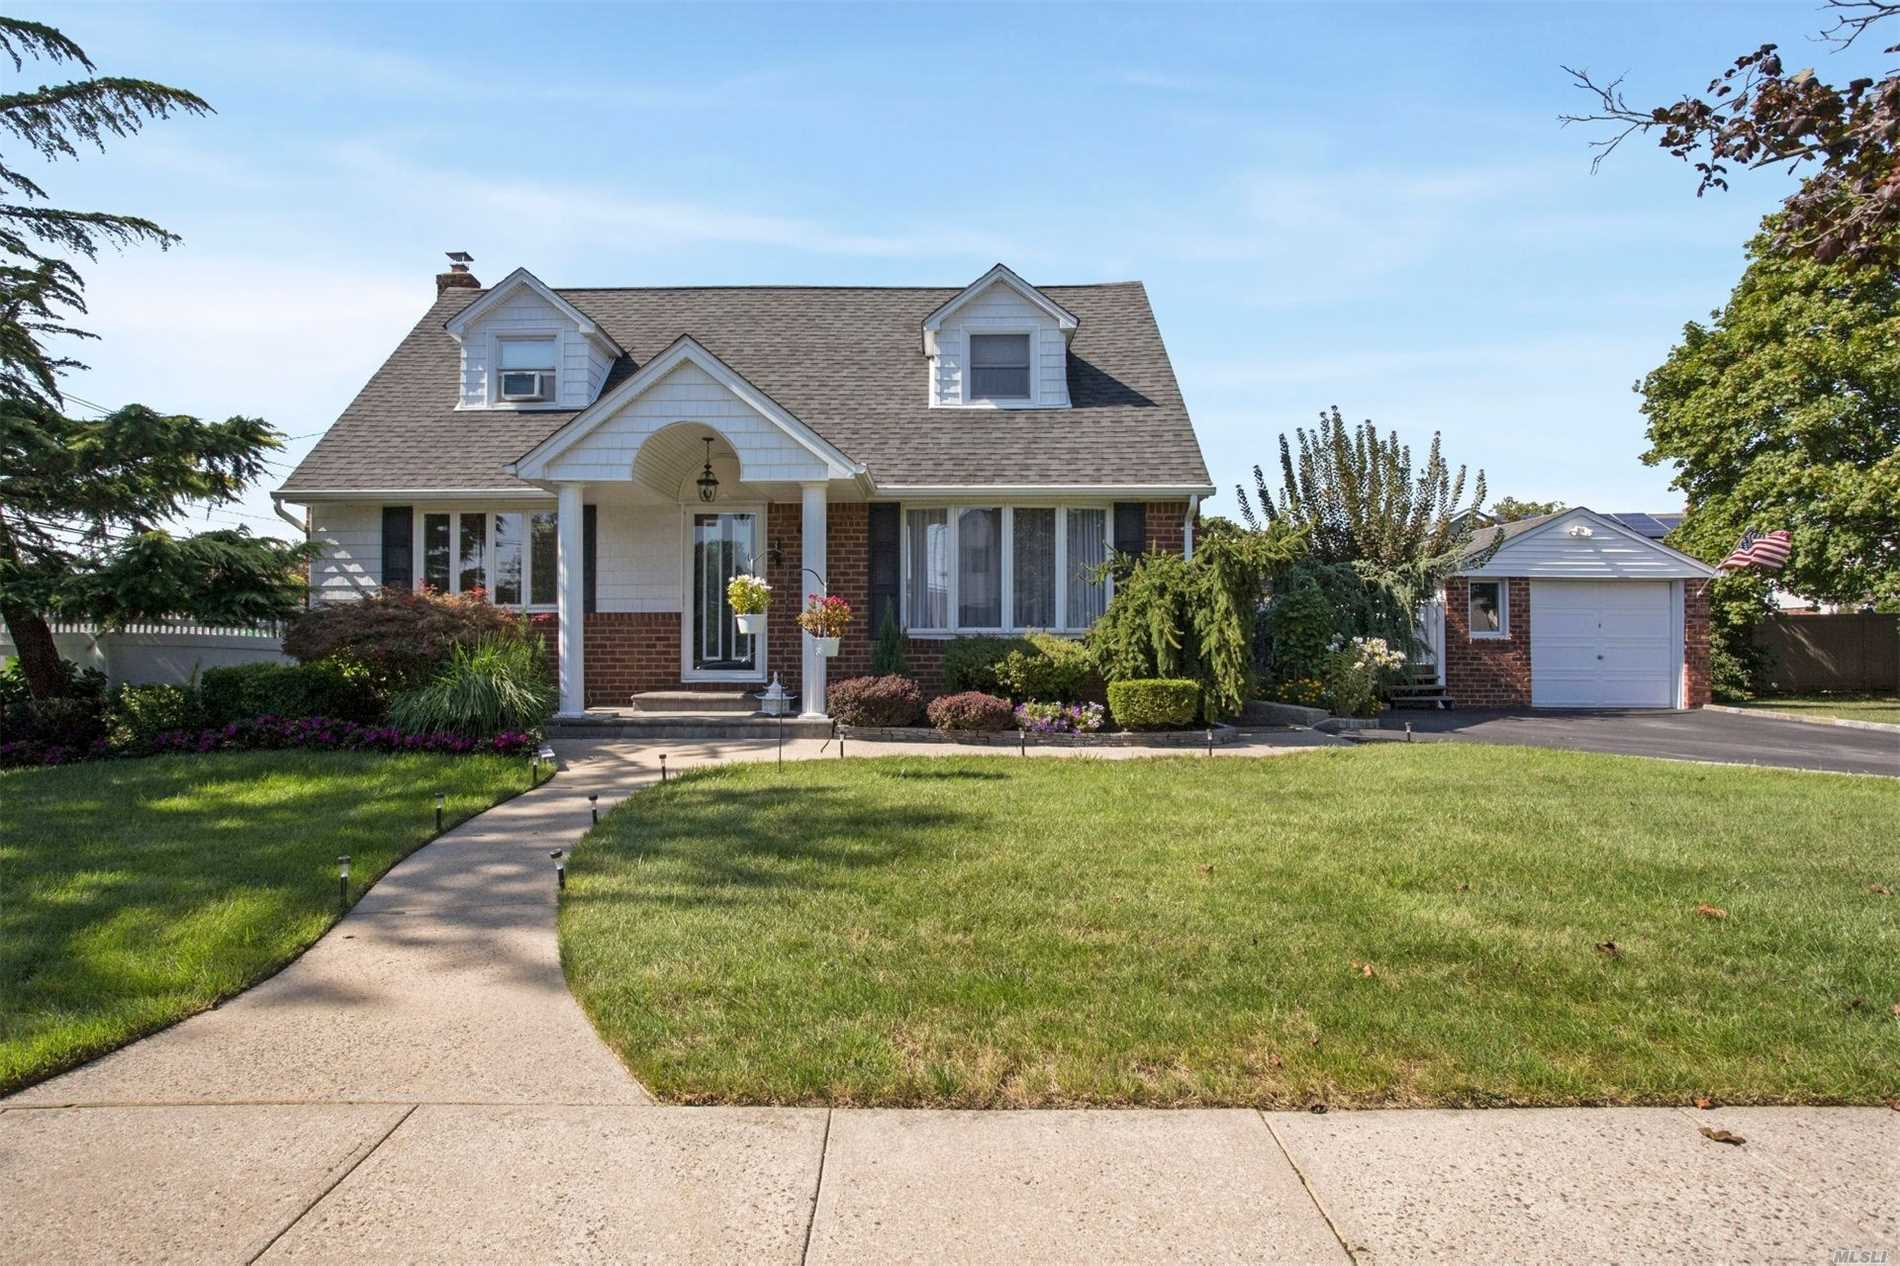 2705 Concord Dr - East Meadow, New York